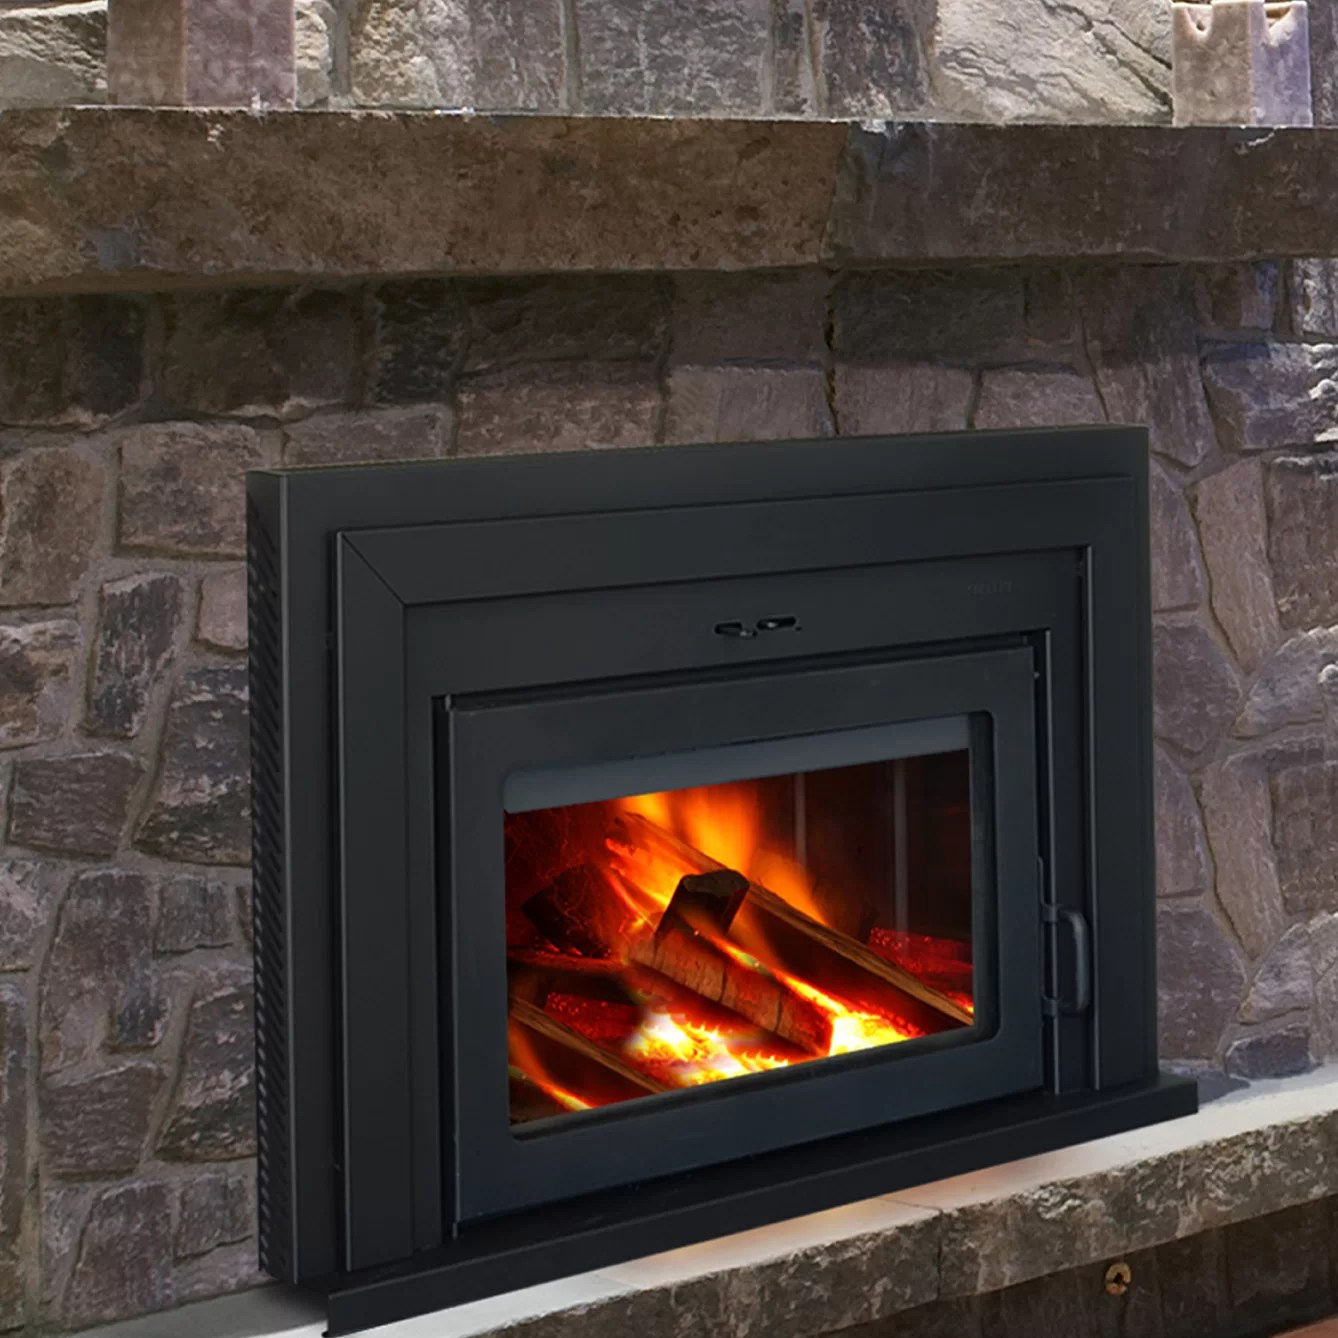 Supreme Fireplaces Inc Fusion Wall Mount Wood Burning Fireplace Insert  eBay